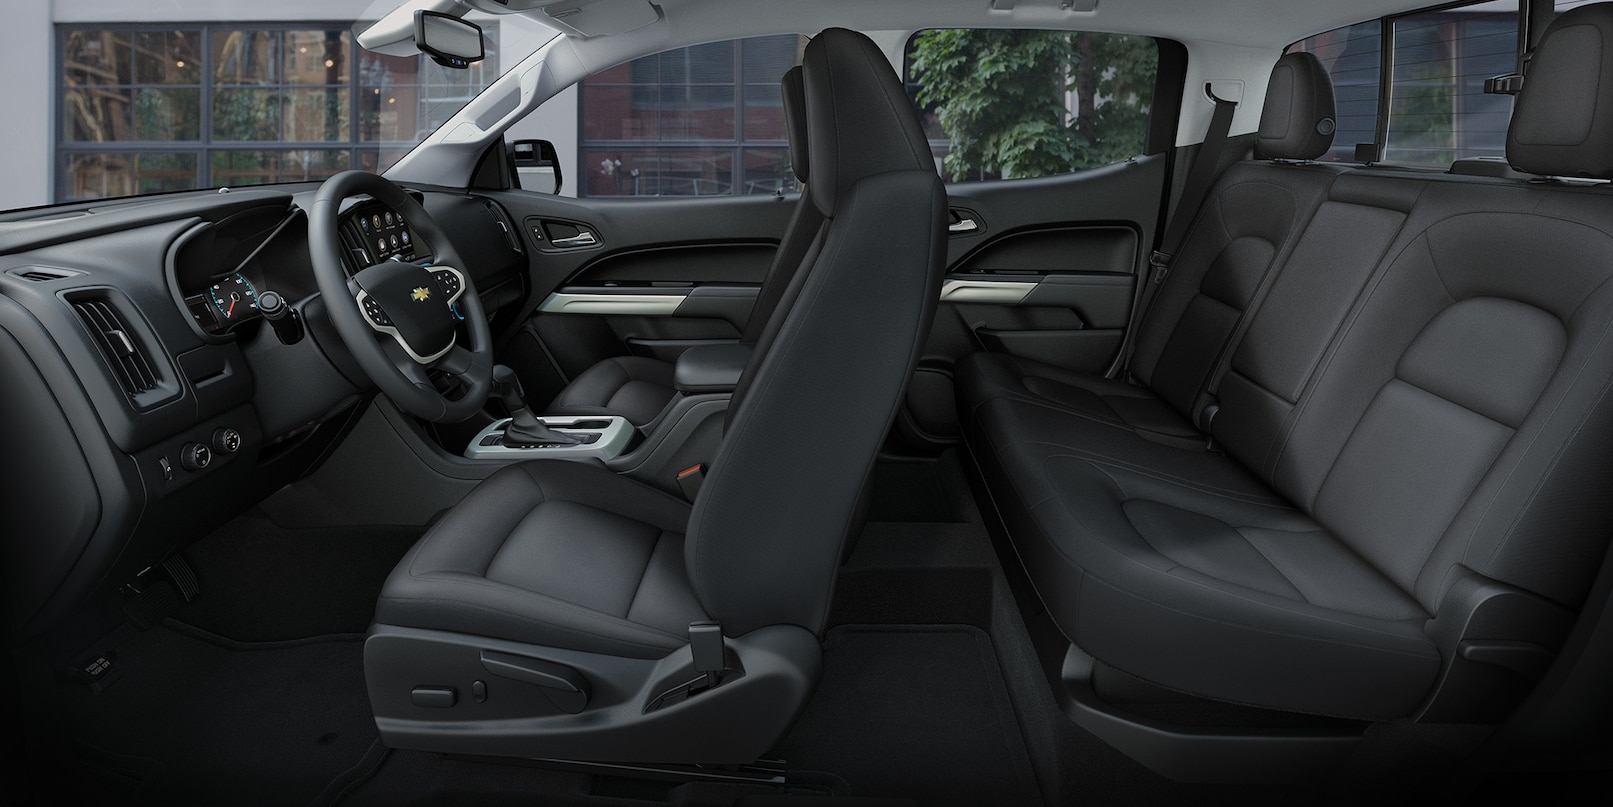 Sit Back And Relax in the 2019 Chevrolet Colorado